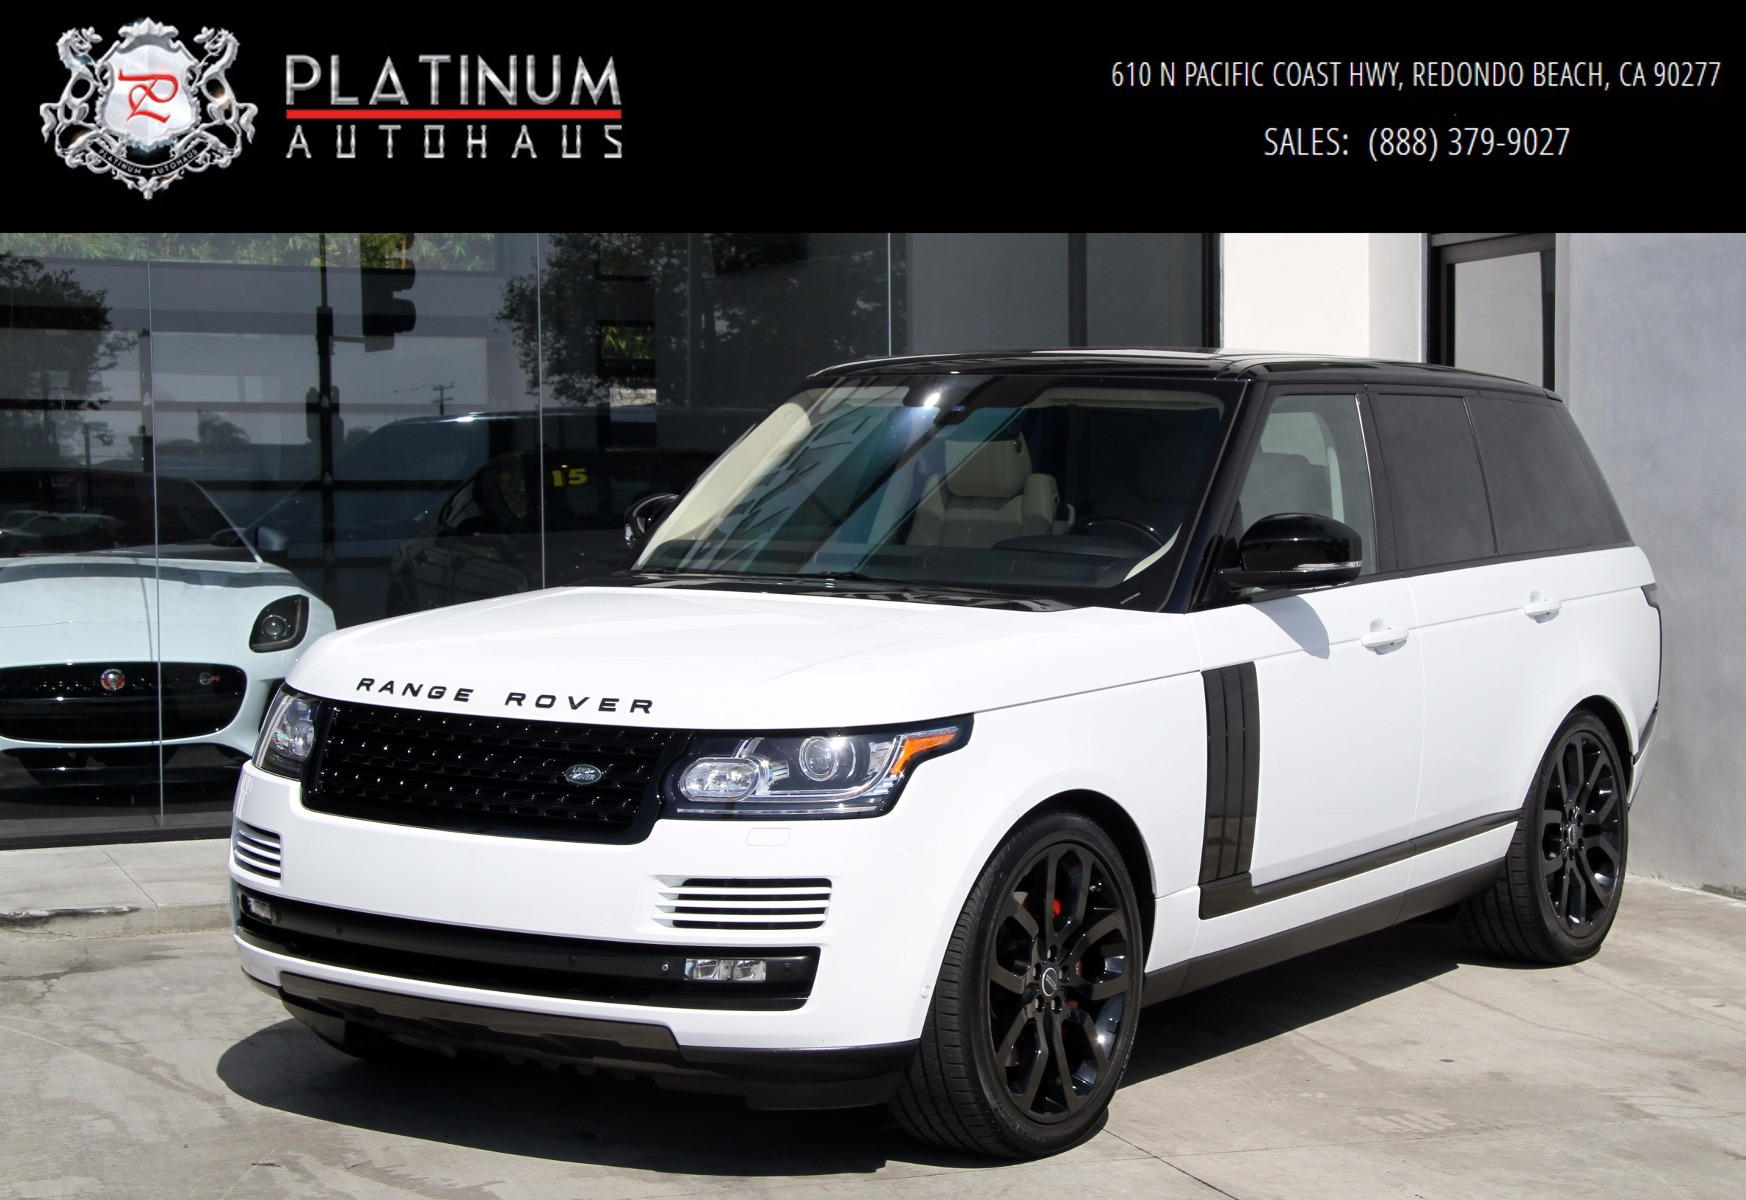 Used Range Rovers For Sale >> 2014 Land Rover Range Rover Supercharged Stock 196900 For Sale